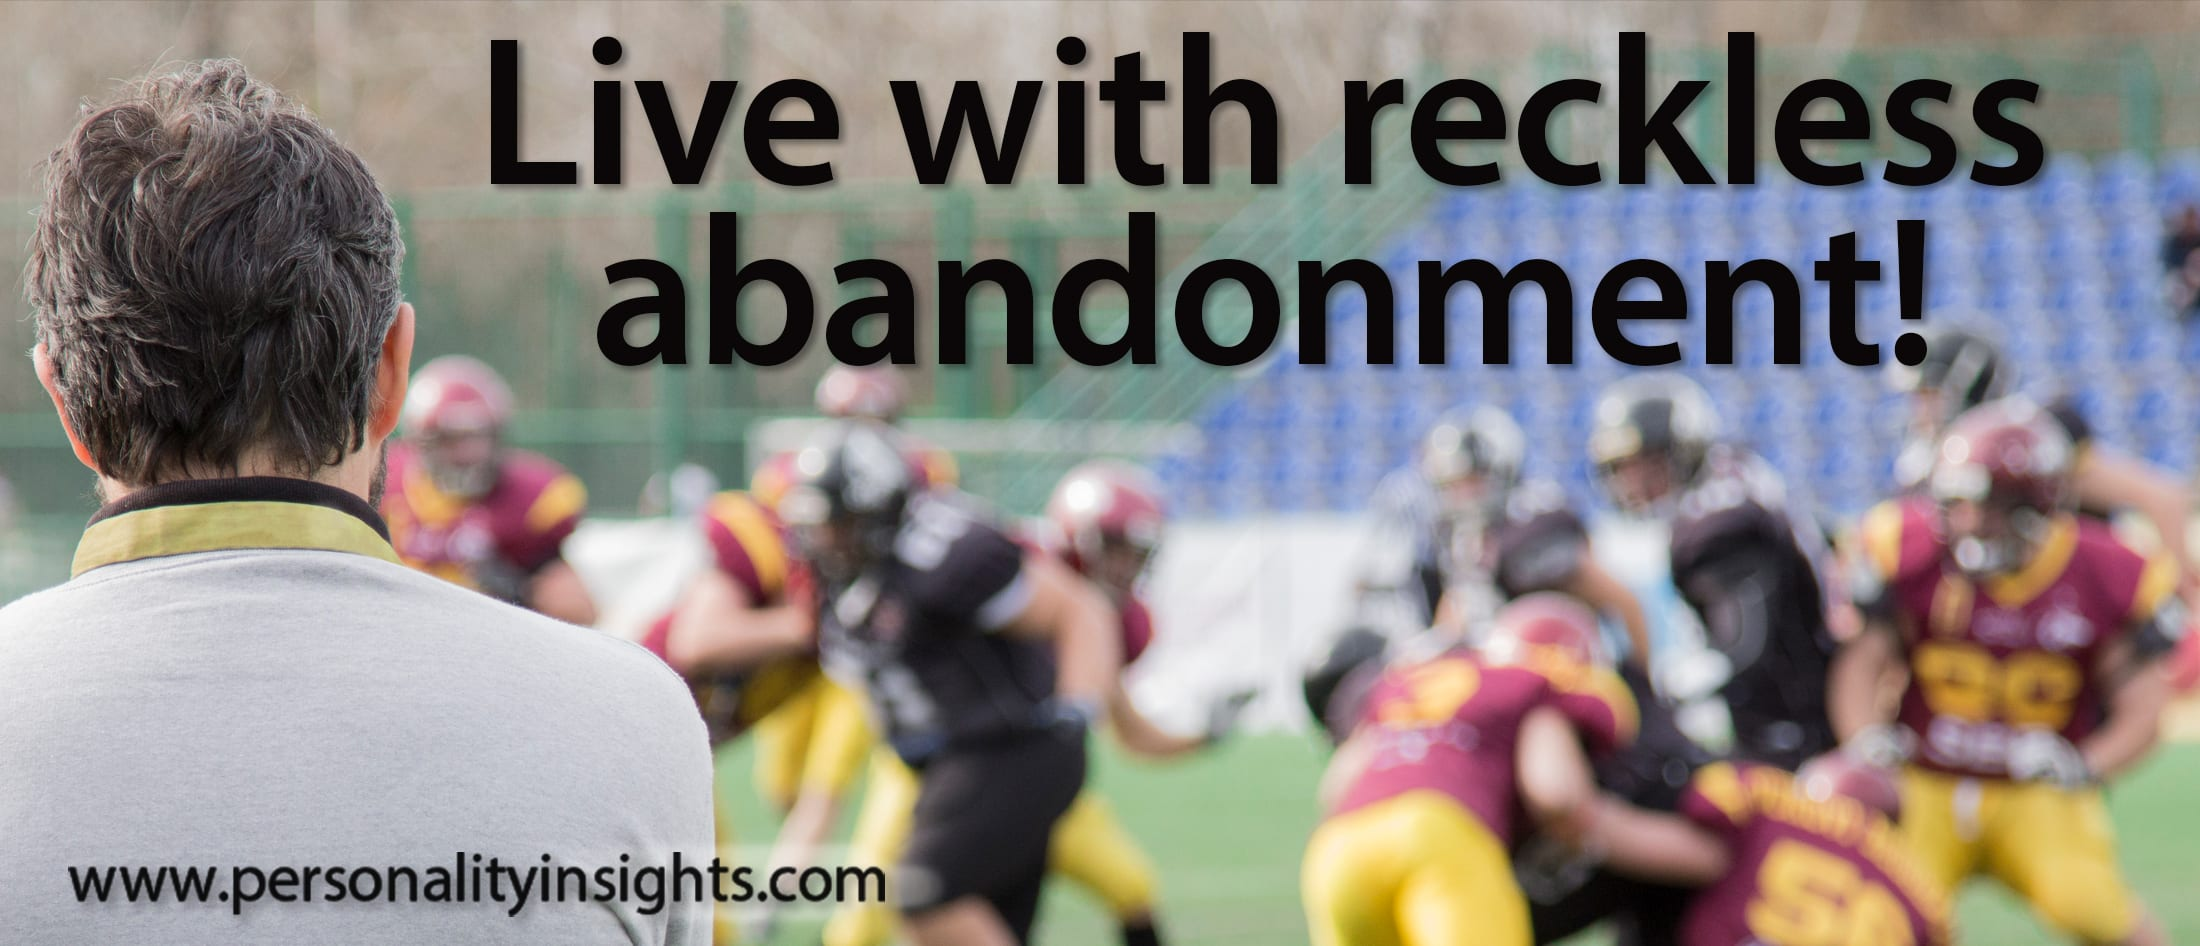 Tip: Live with reckless abandonment!